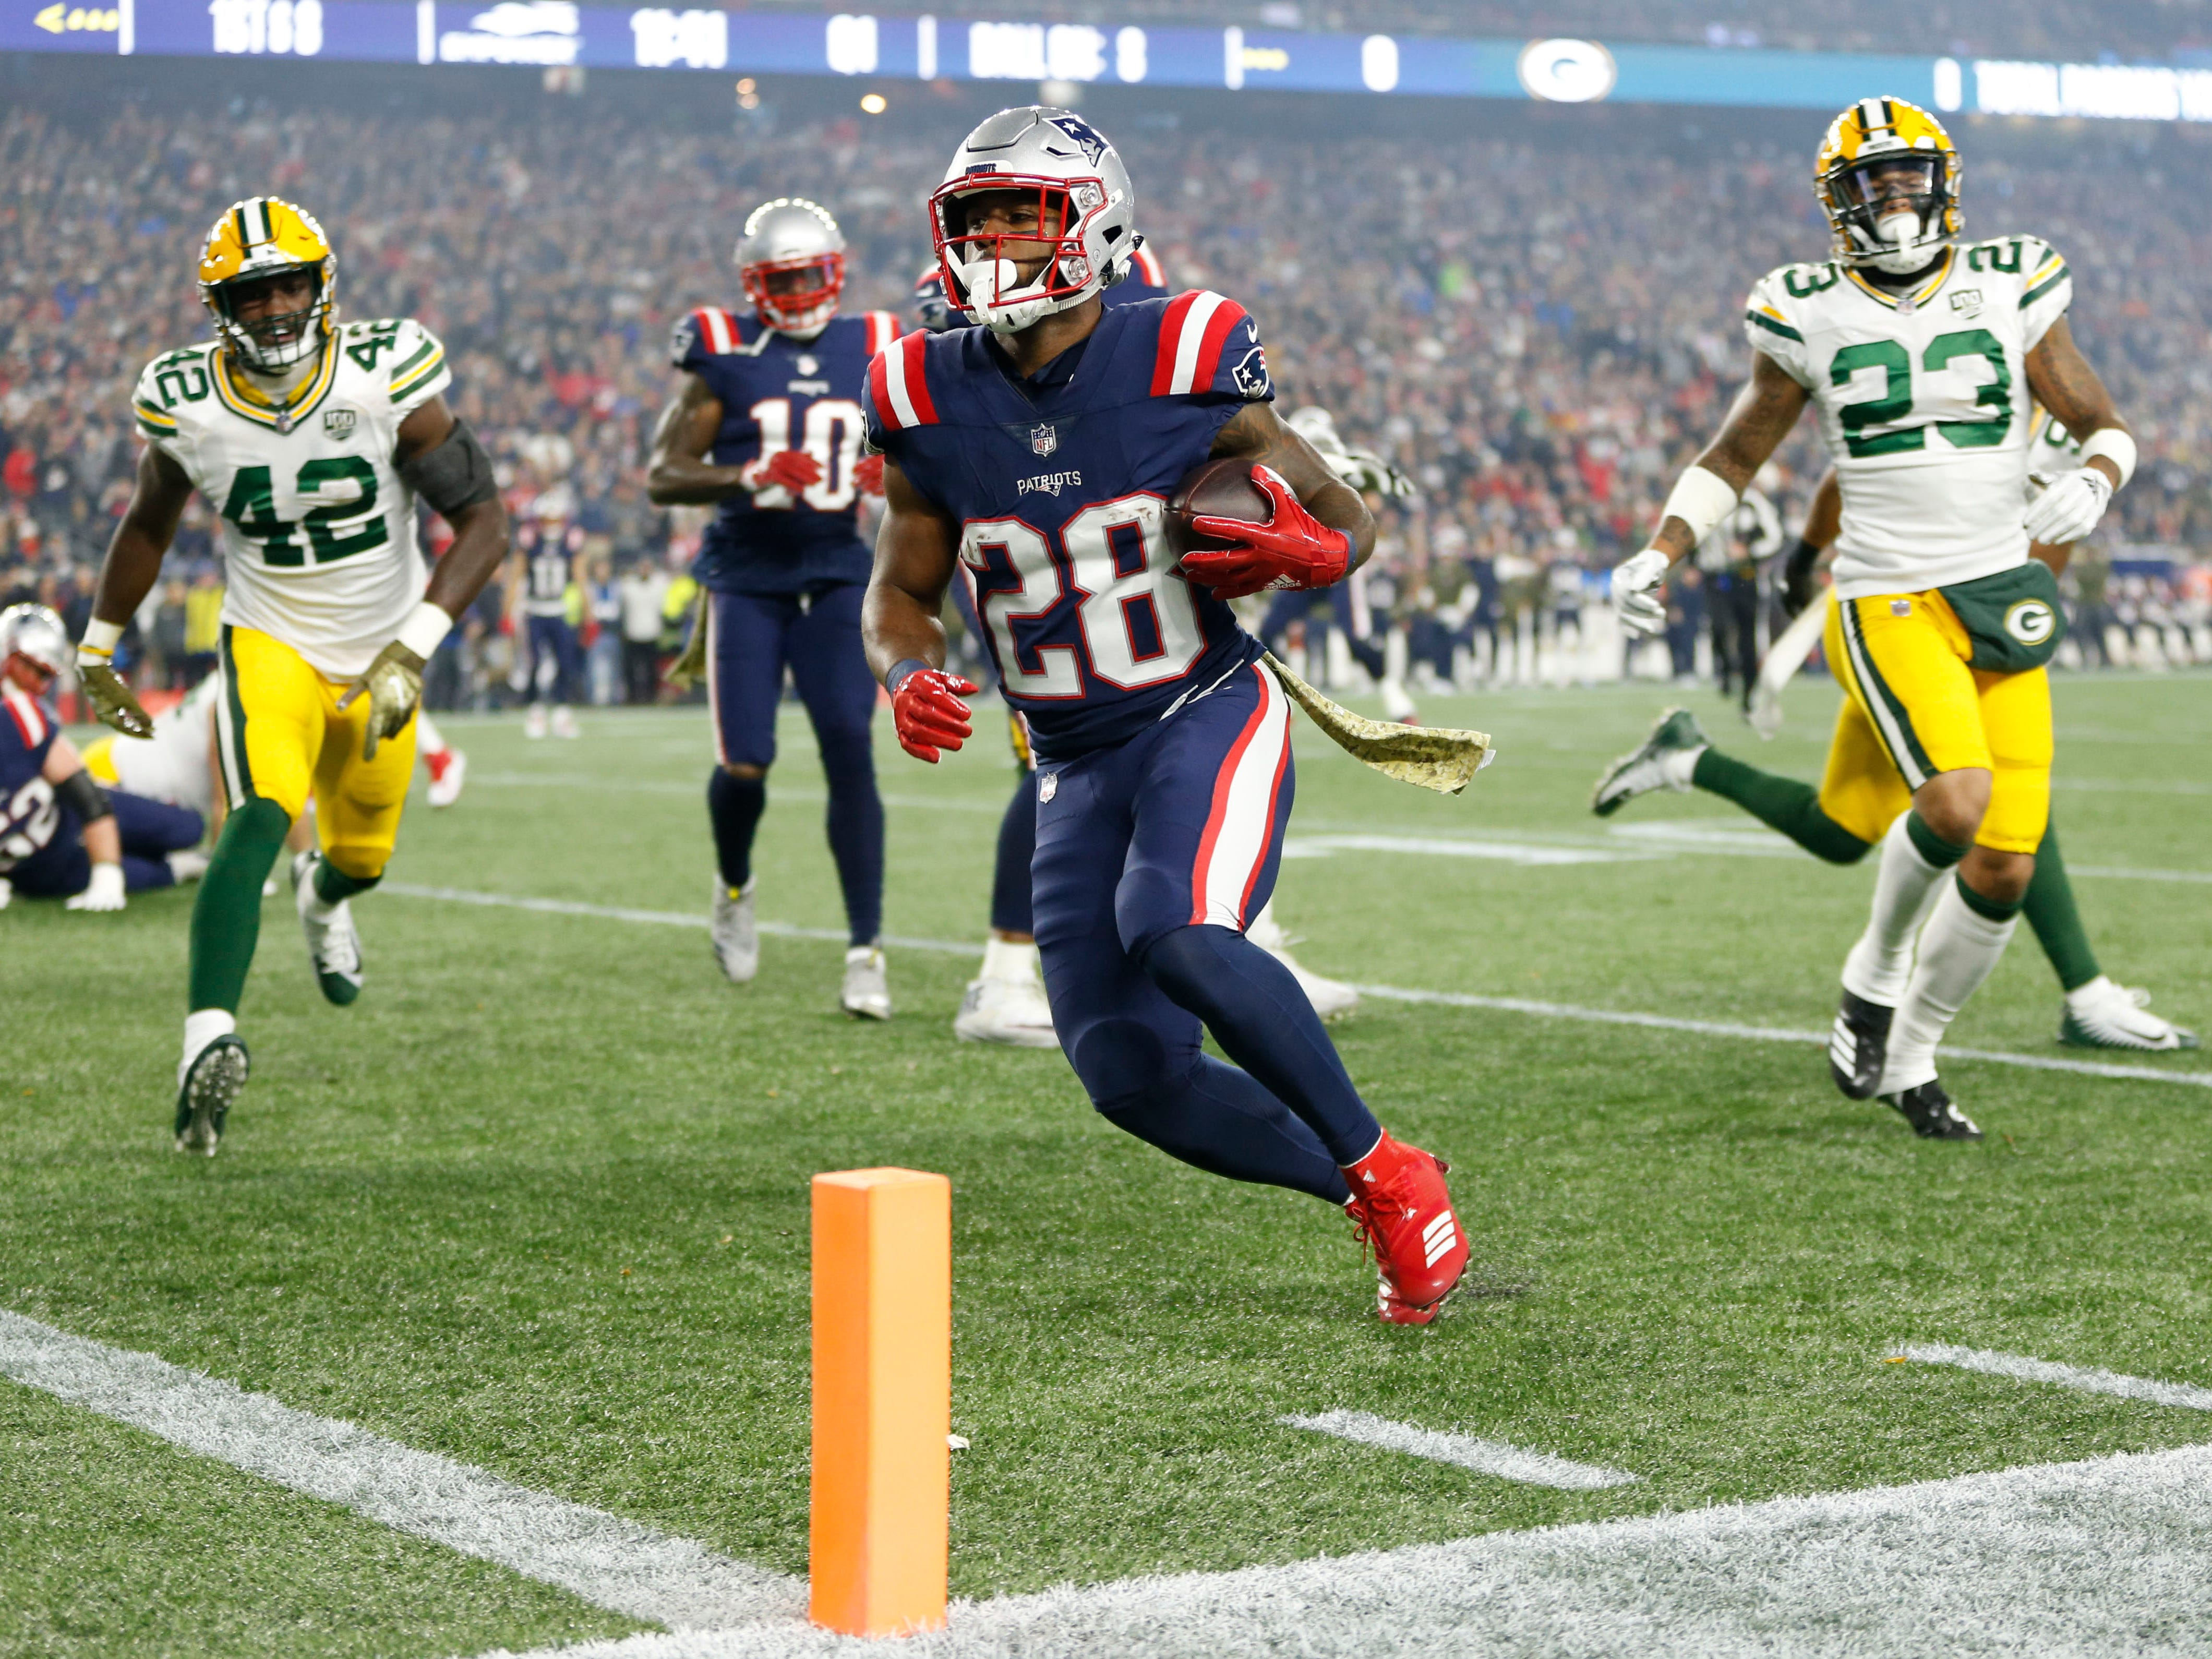 New England Patriots running back James White rushes for a touchdown during the first quarter against the Green Bay Packers at Gillette Stadium.